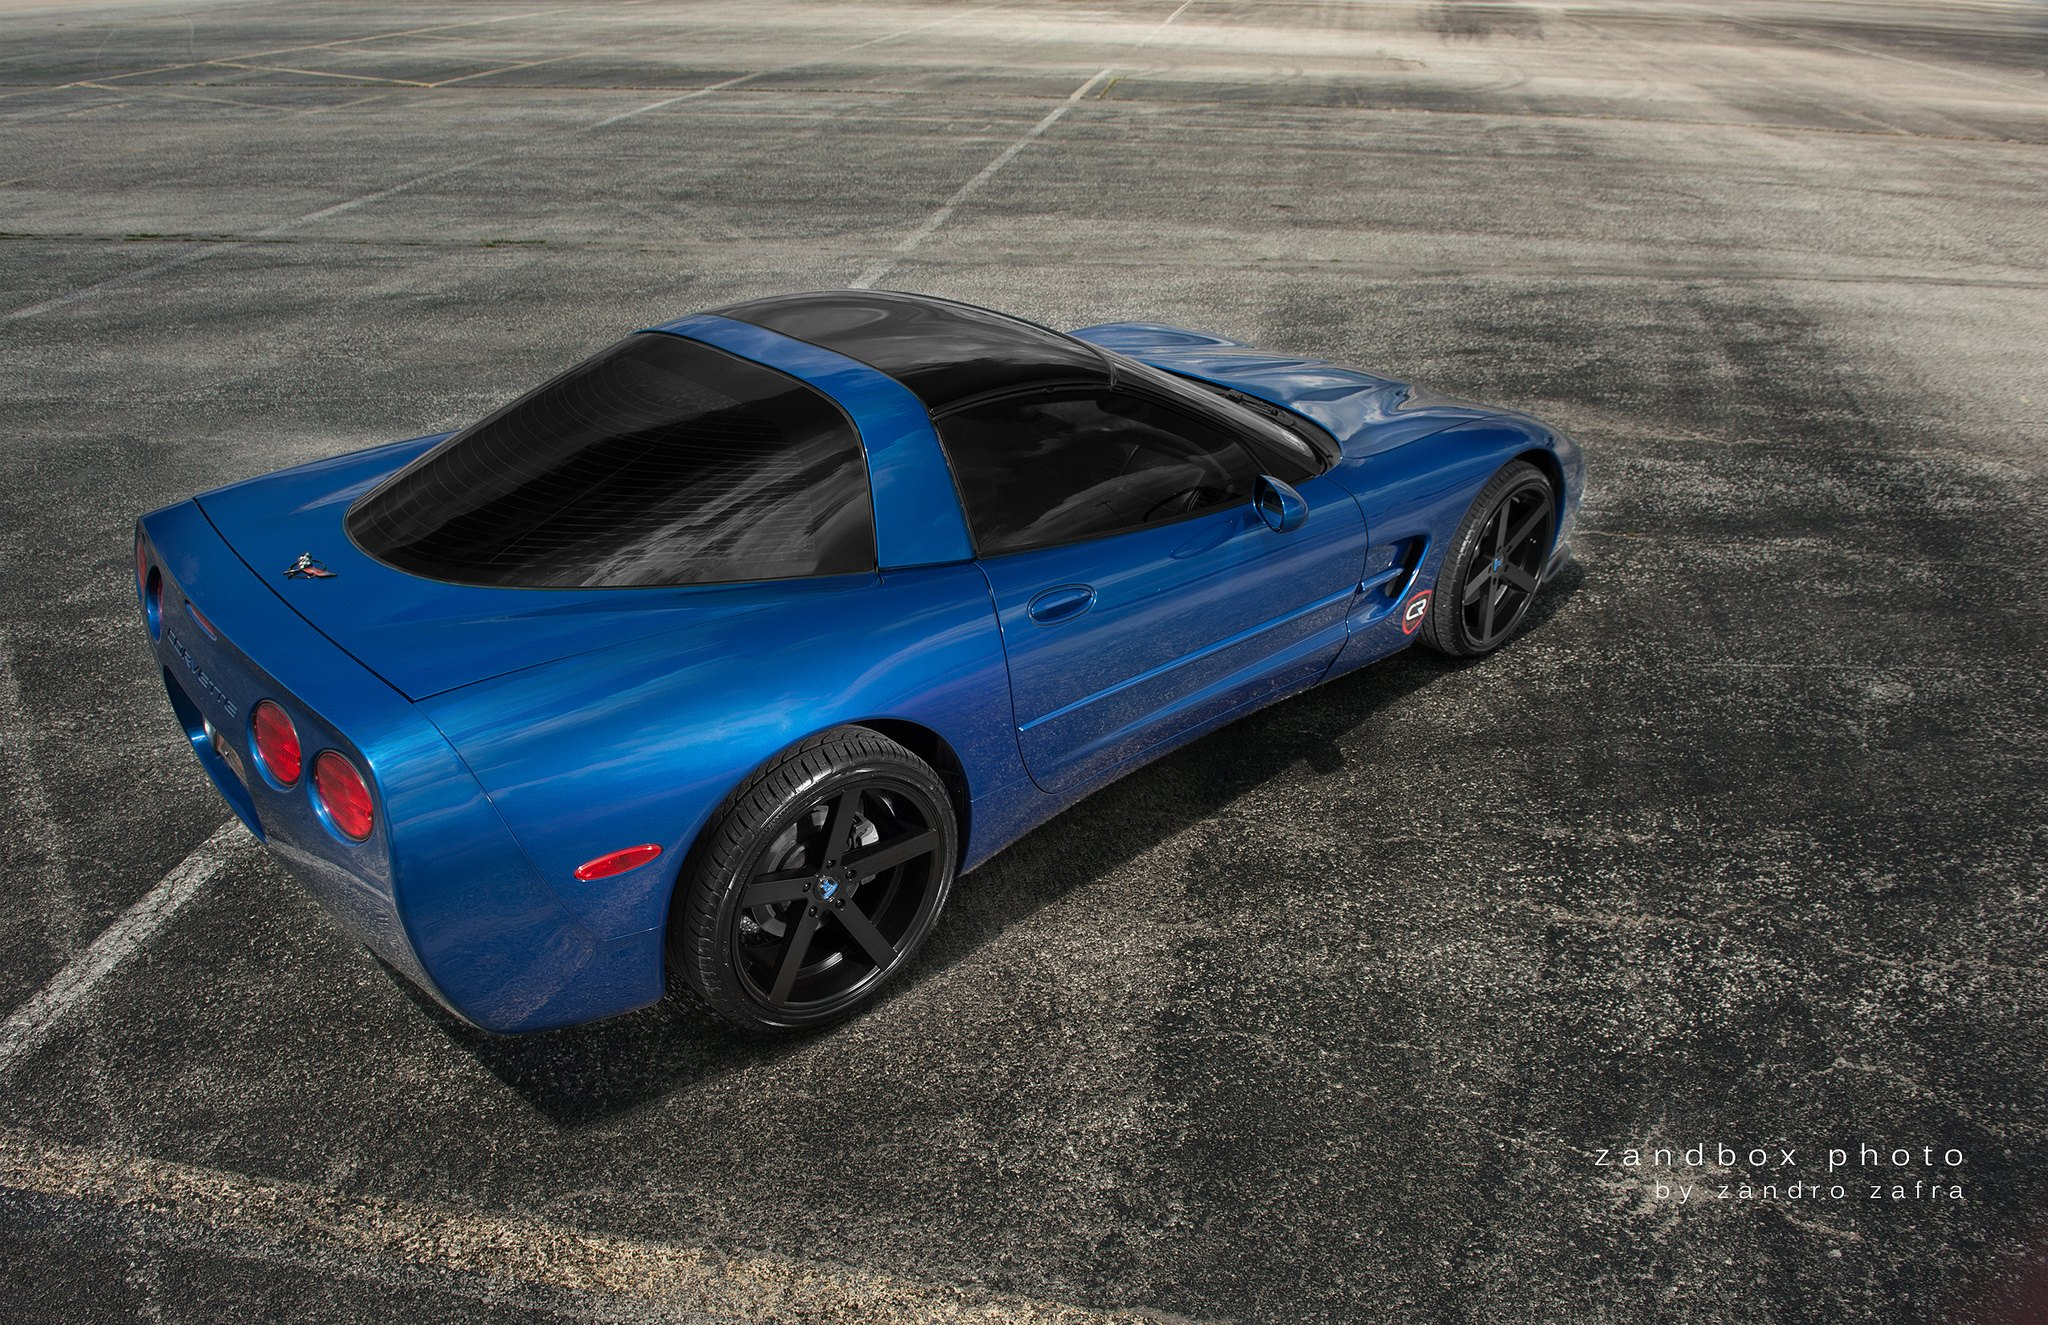 Red LED Taillights on Blue Chevy Corvette - Photo by zandbox